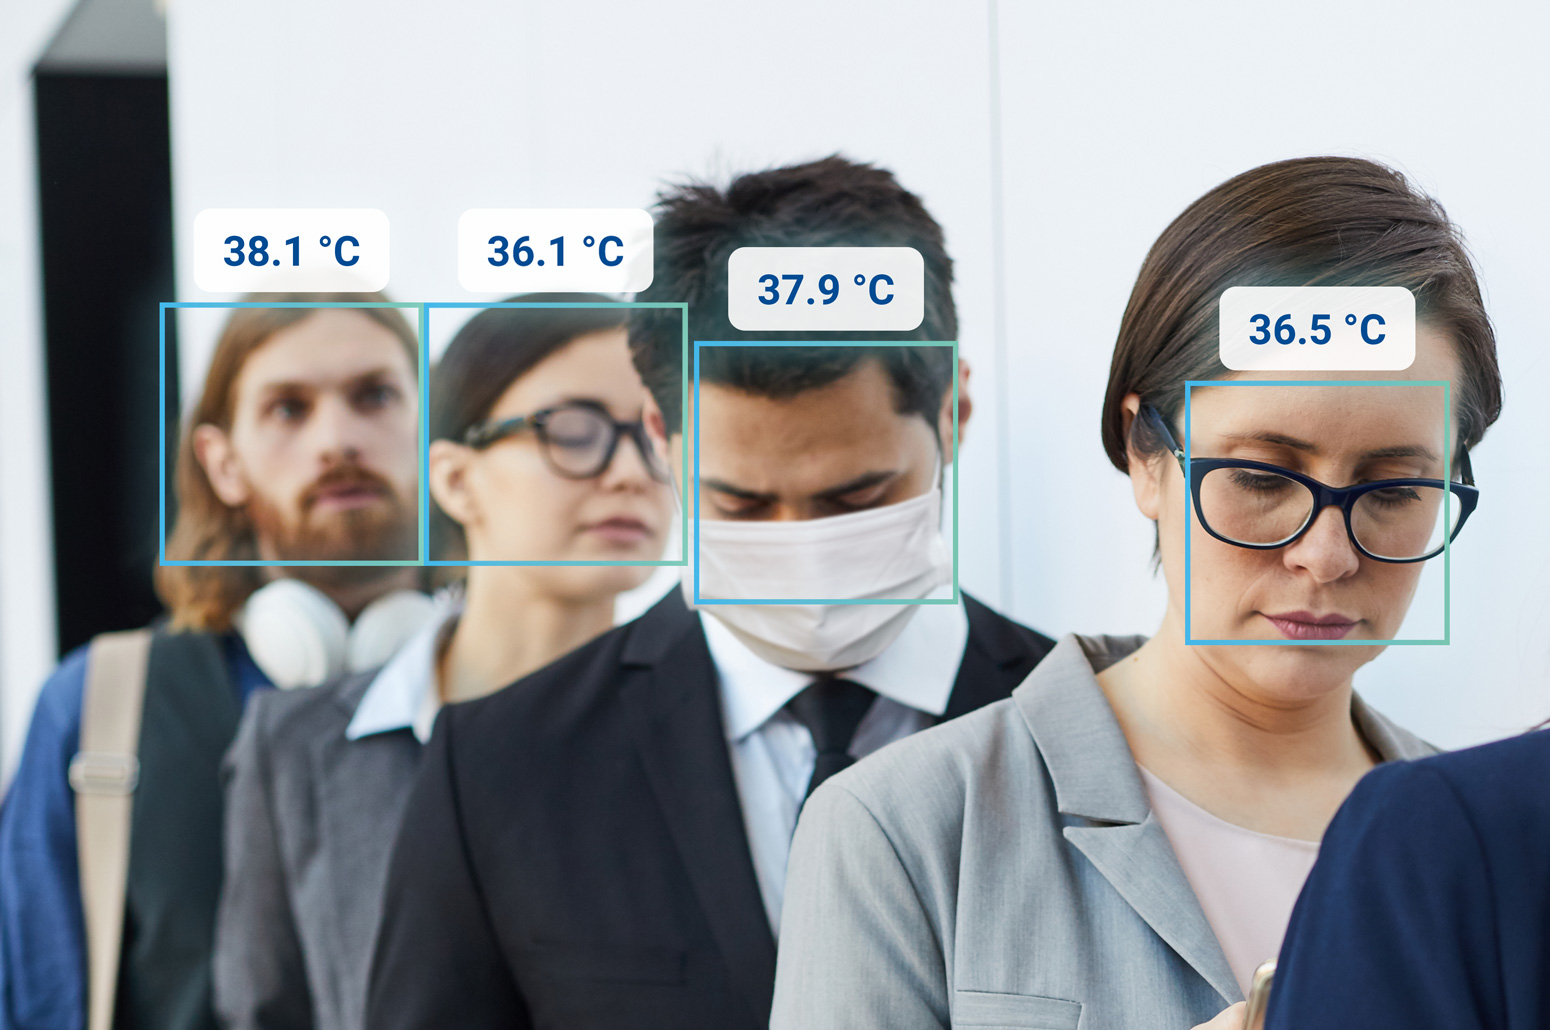 Increasing Safety with Biometric Temperature Screening